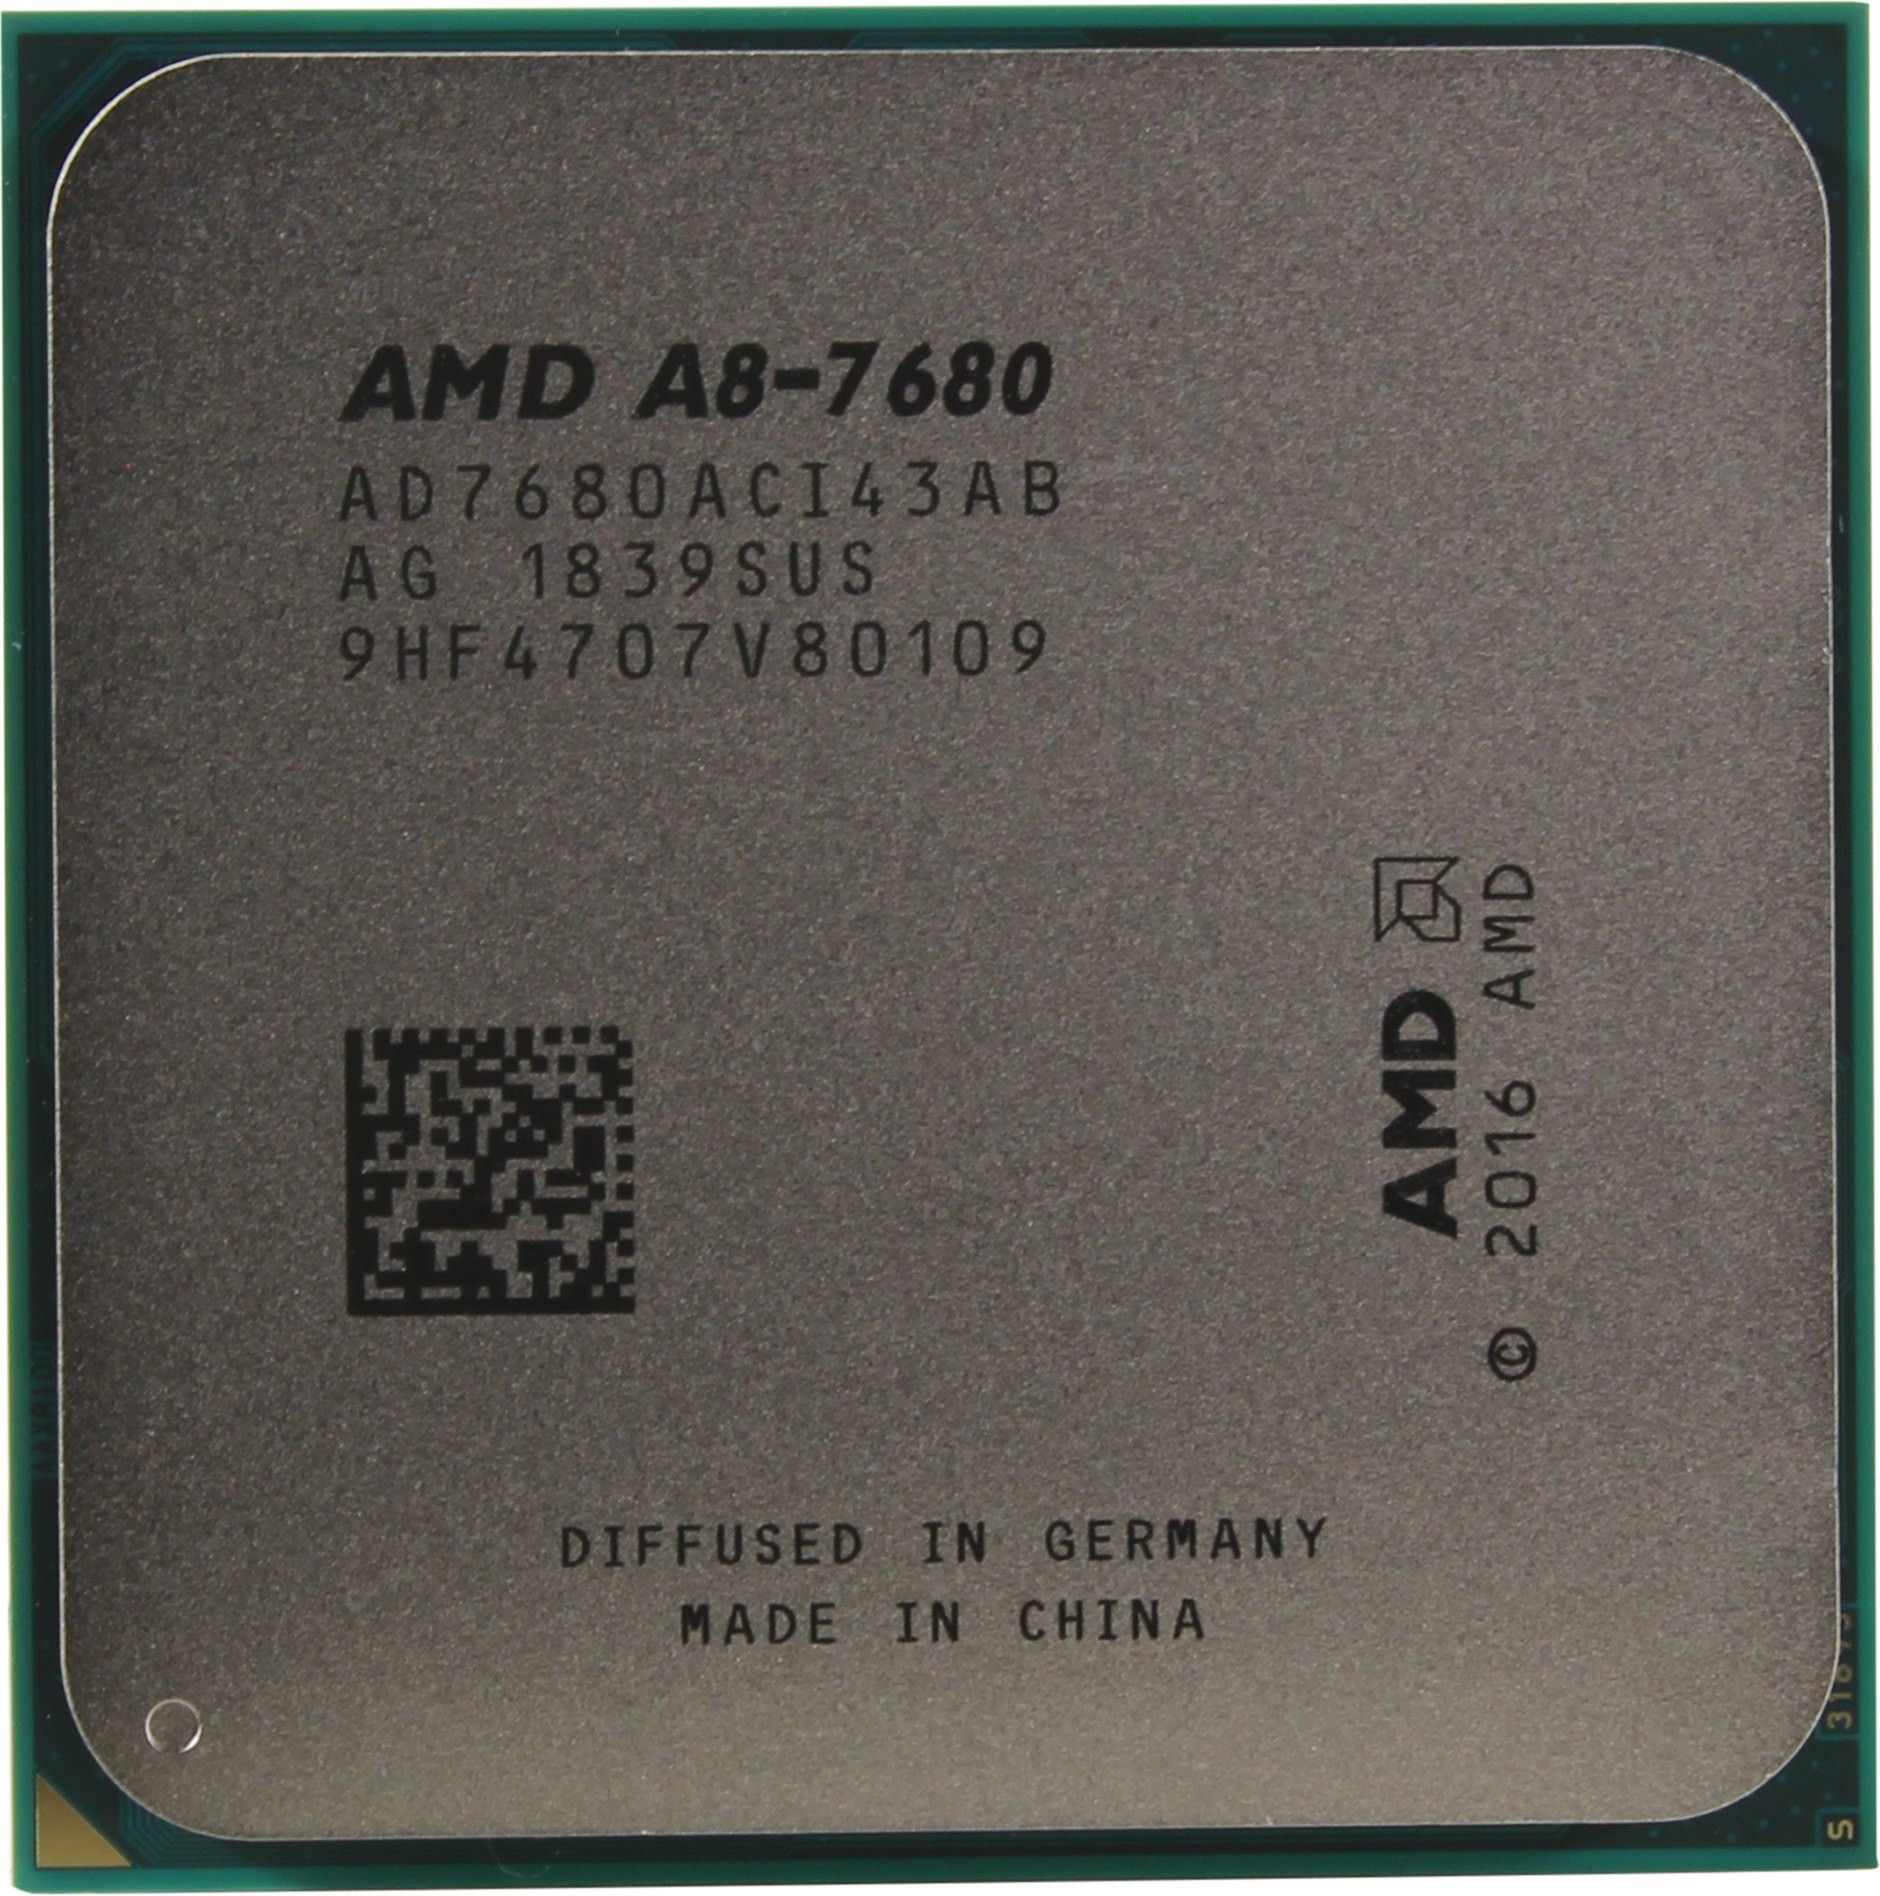 Процессор AMD A8-7680 (BOX) (AD7680ACABBOX) 3.5(3.8)GHz, 4 ядра / 4 потока, 2Mb, Radeon R7, 45W (Socket FM2+)